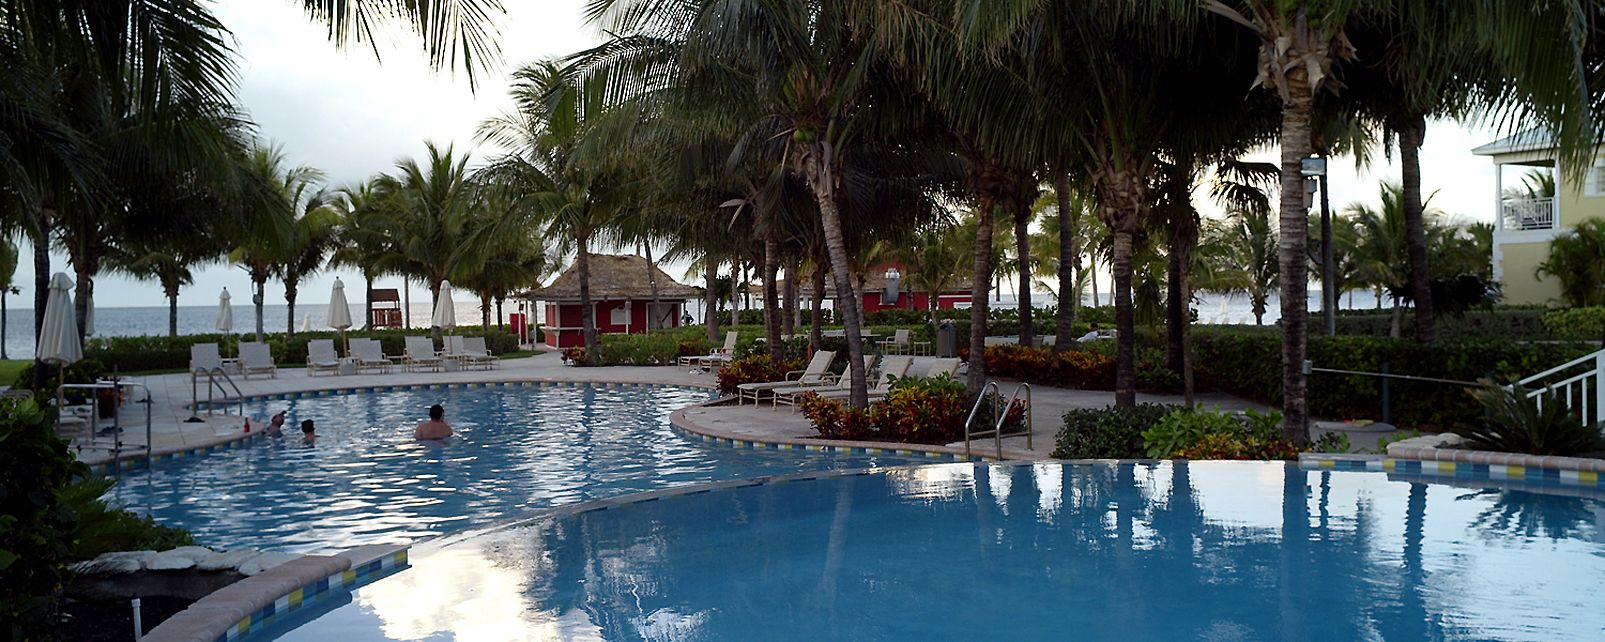 Hotel Old Bahama Bay